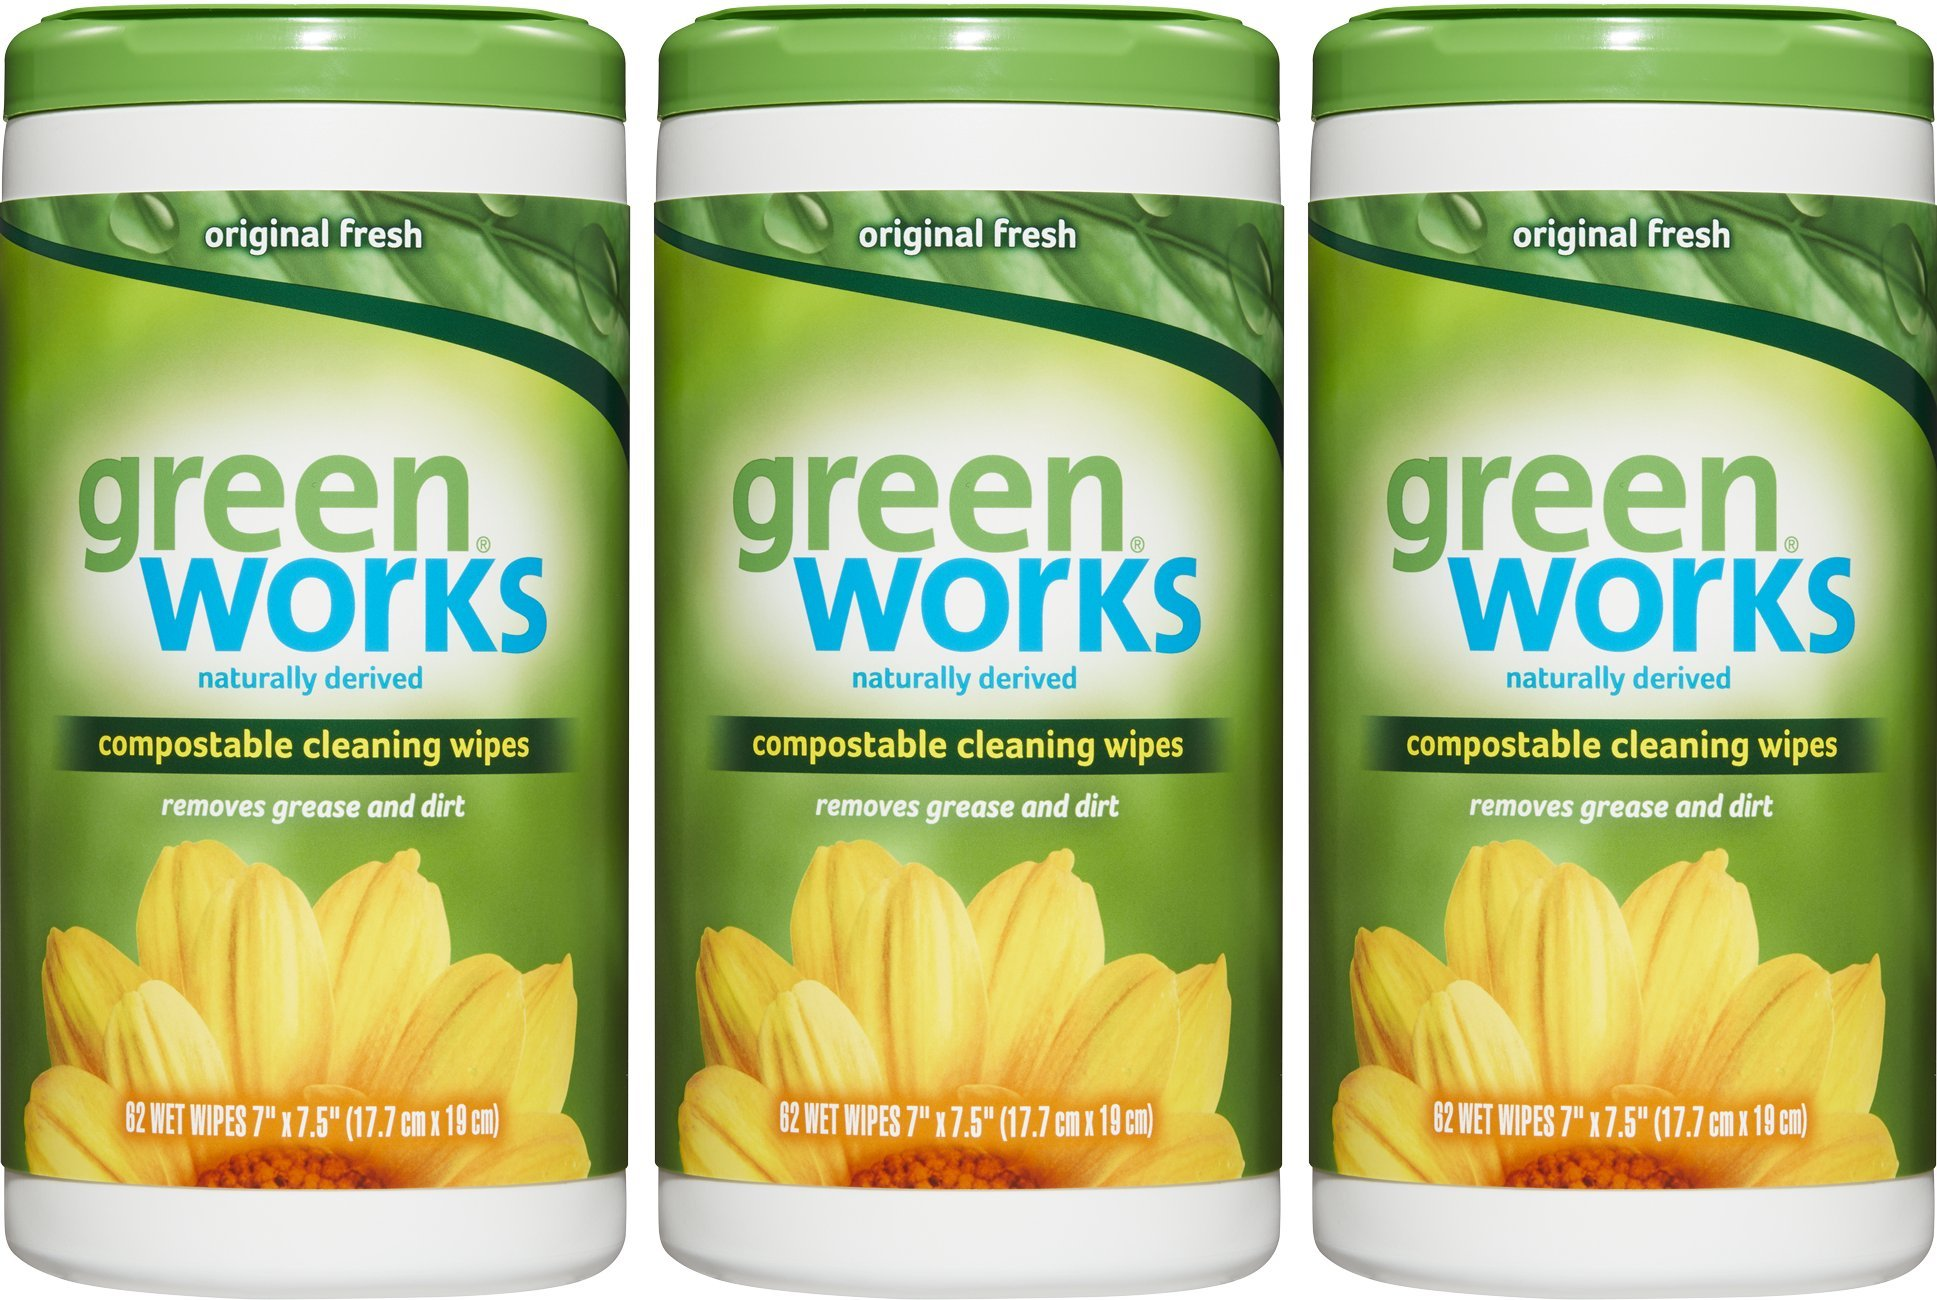 Green Works Compostable Cleaning Wipes, Original Fresh, 186 Wipes